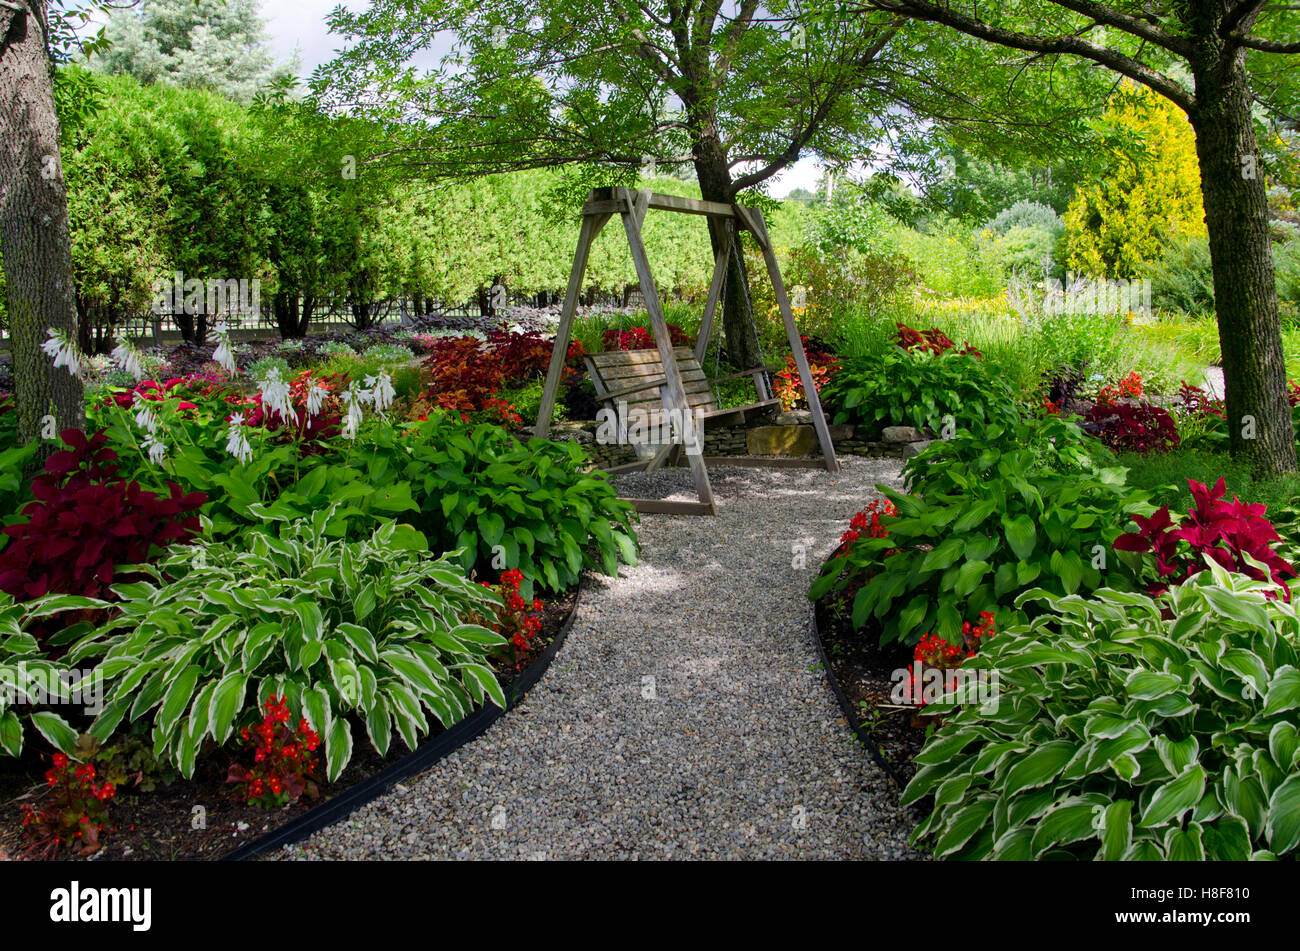 Horizontal Wooden Swing At Pineland Garden With Hostas And Coleus Along  Shaded Pathway, Maine, USA